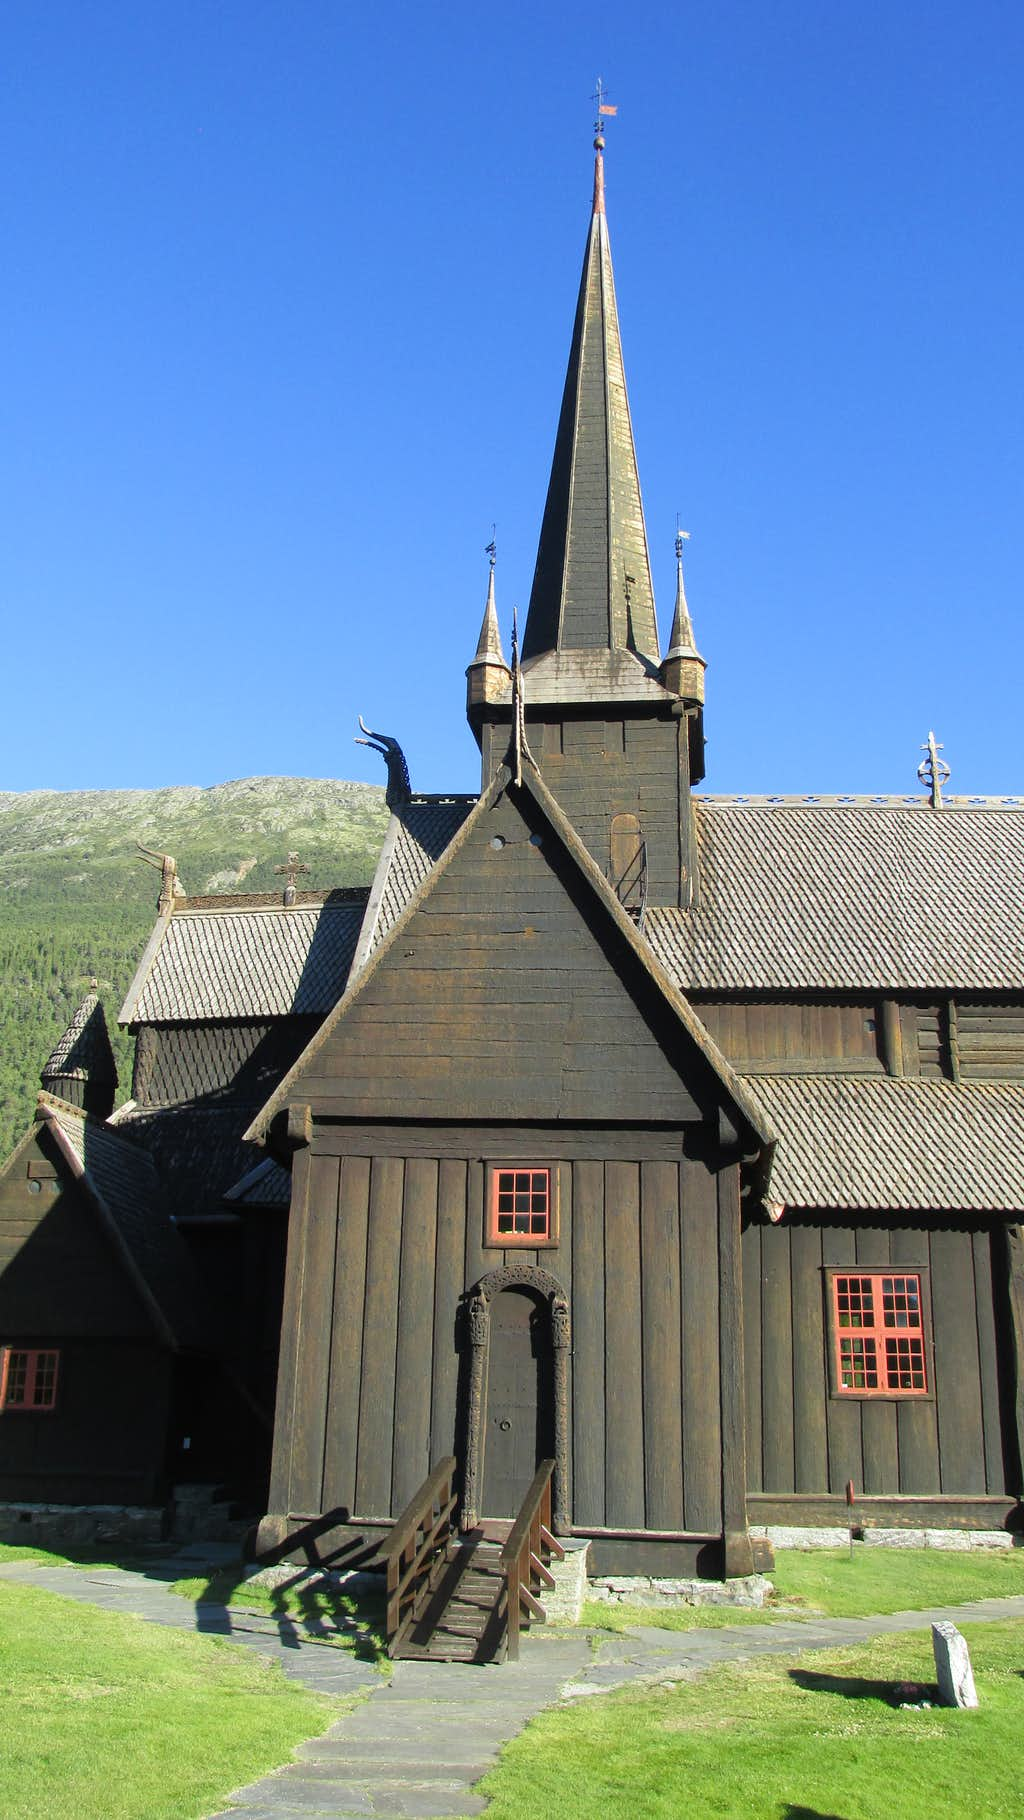 The Lom Stavkyrkje church was built approximately 900 years ago